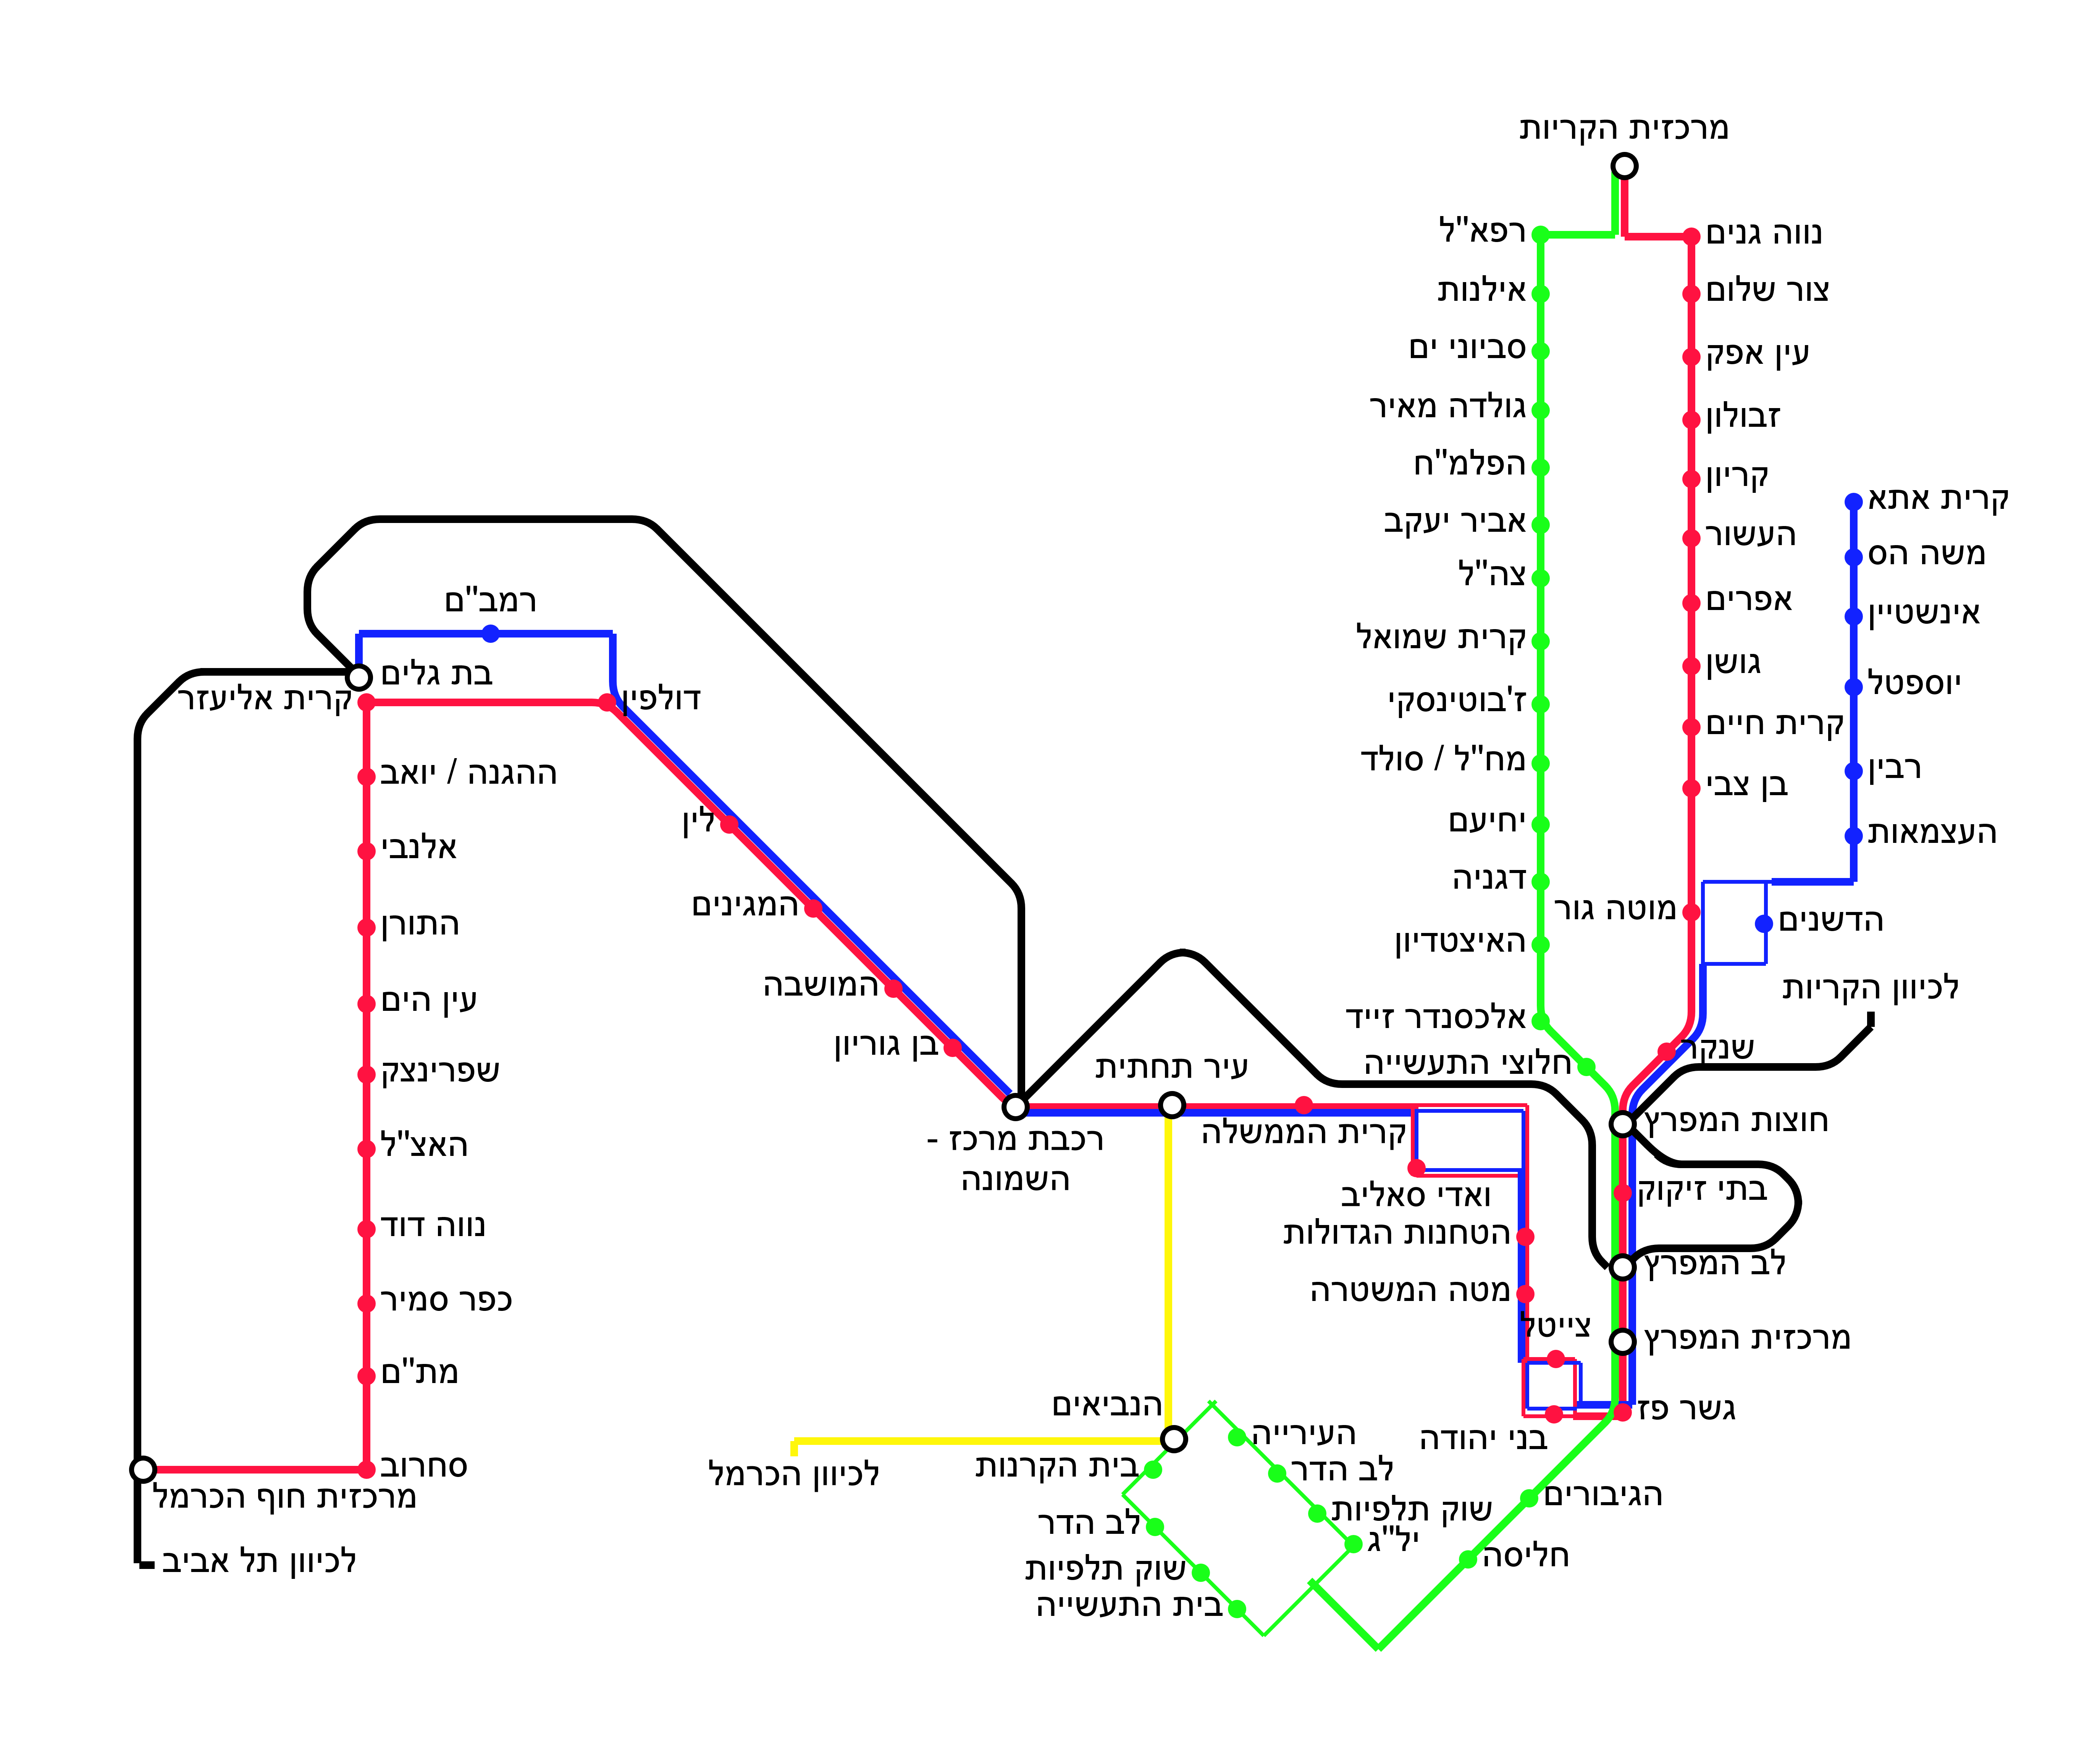 FileMap of the Metronit bus lines in Haifapng Wikimedia Commons